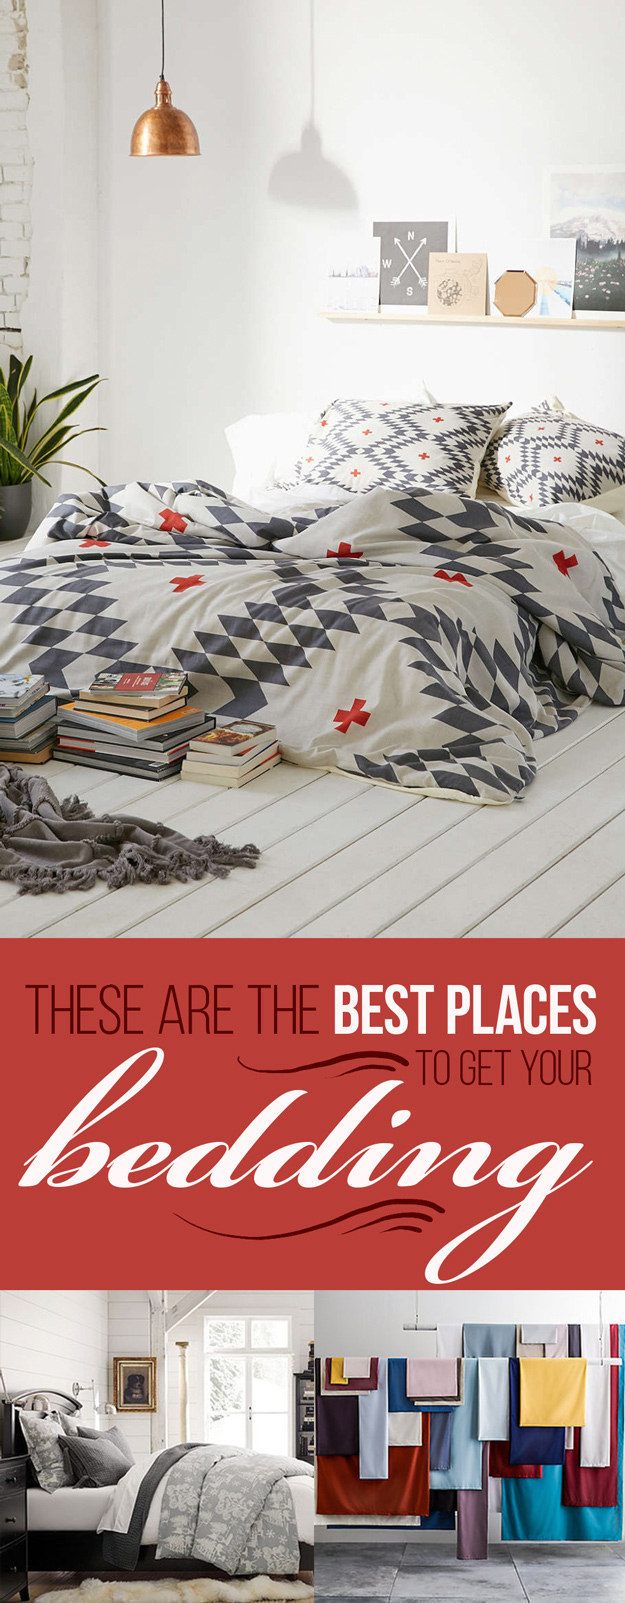 Buy Duvet Cover Here Are The Places That Sell The Best Bedding Online